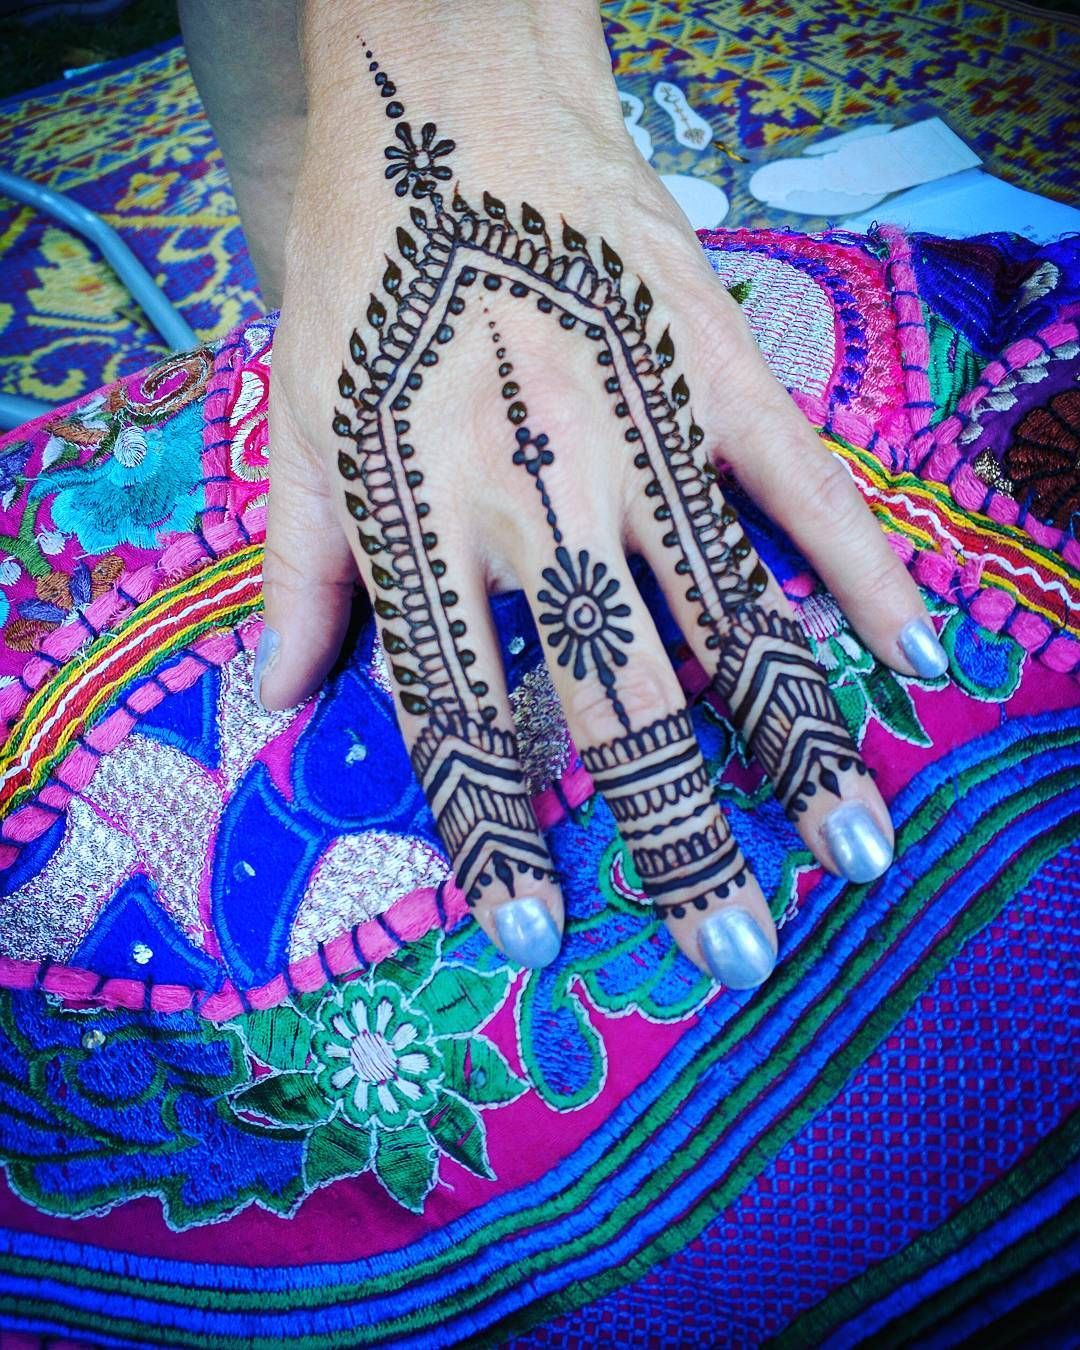 Had a great day at #fairfaxfestival yesterday and looking forward to another beautiful day today. Artists choice starts at $20 and we create something unique for you! #henna #mehndi #festivalfashion #musicfestival #hippie #peaceandlove